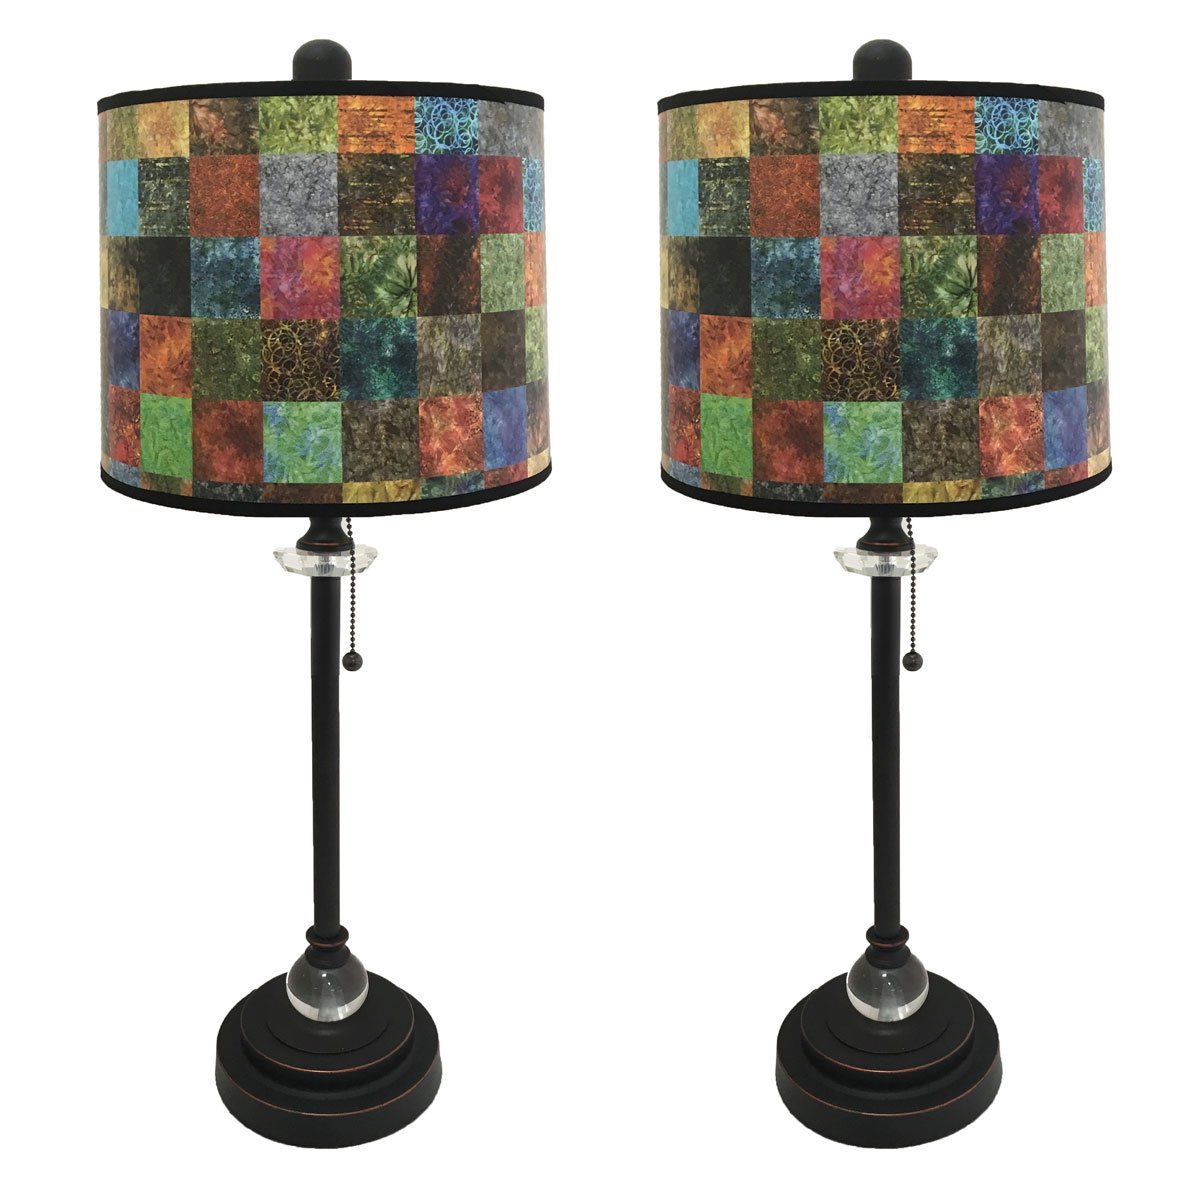 Royal Designs 28'' Crystal and Oil Rub Bronze Buffet Lamp with Colorful Patchwork Design Hard Back Lamp Shade, Set of 2